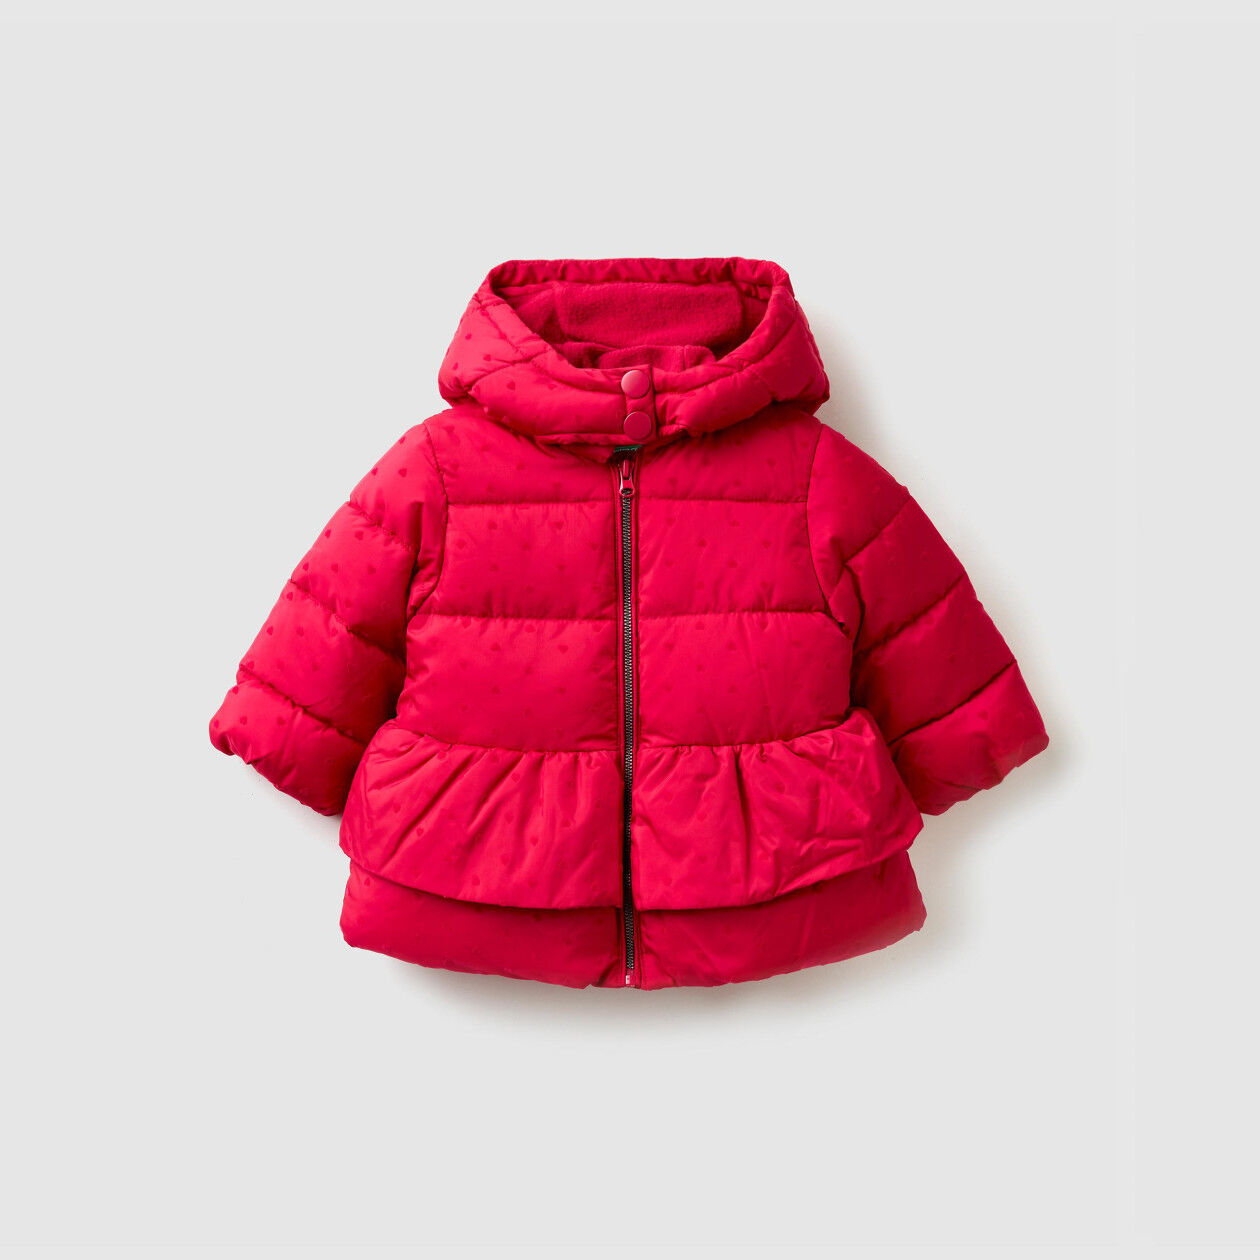 Jacket with heart print and hood